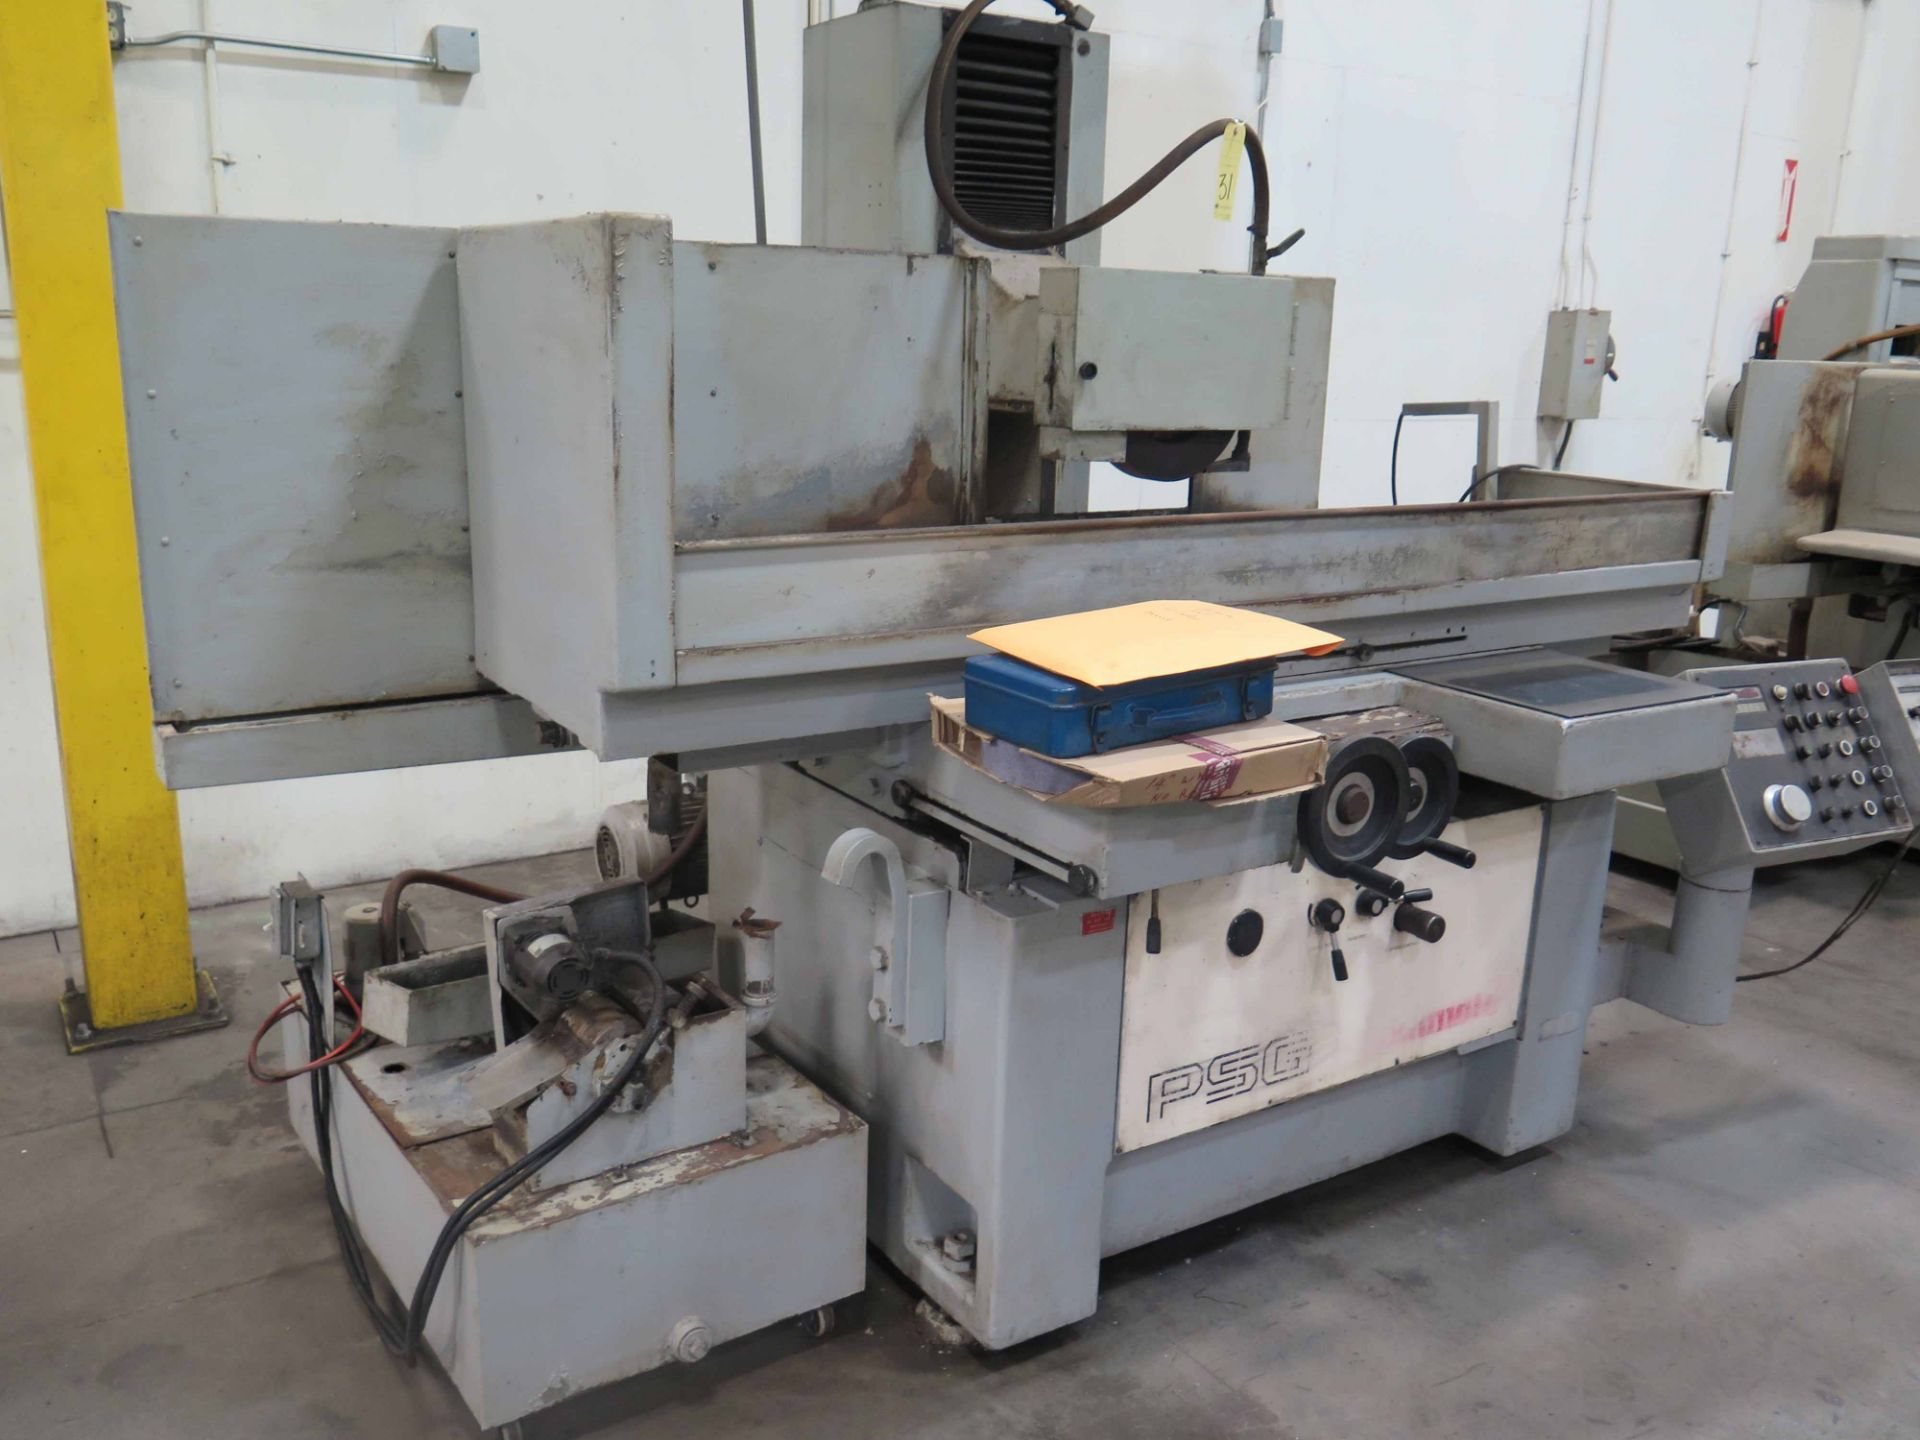 """Lot 31 - HYDRAULIC SURFACE GRINDER, OKAMOTO MDL. PSG 1632DX, 15-3/4"""" x 31-1/2"""" electromagnetic chuck,"""